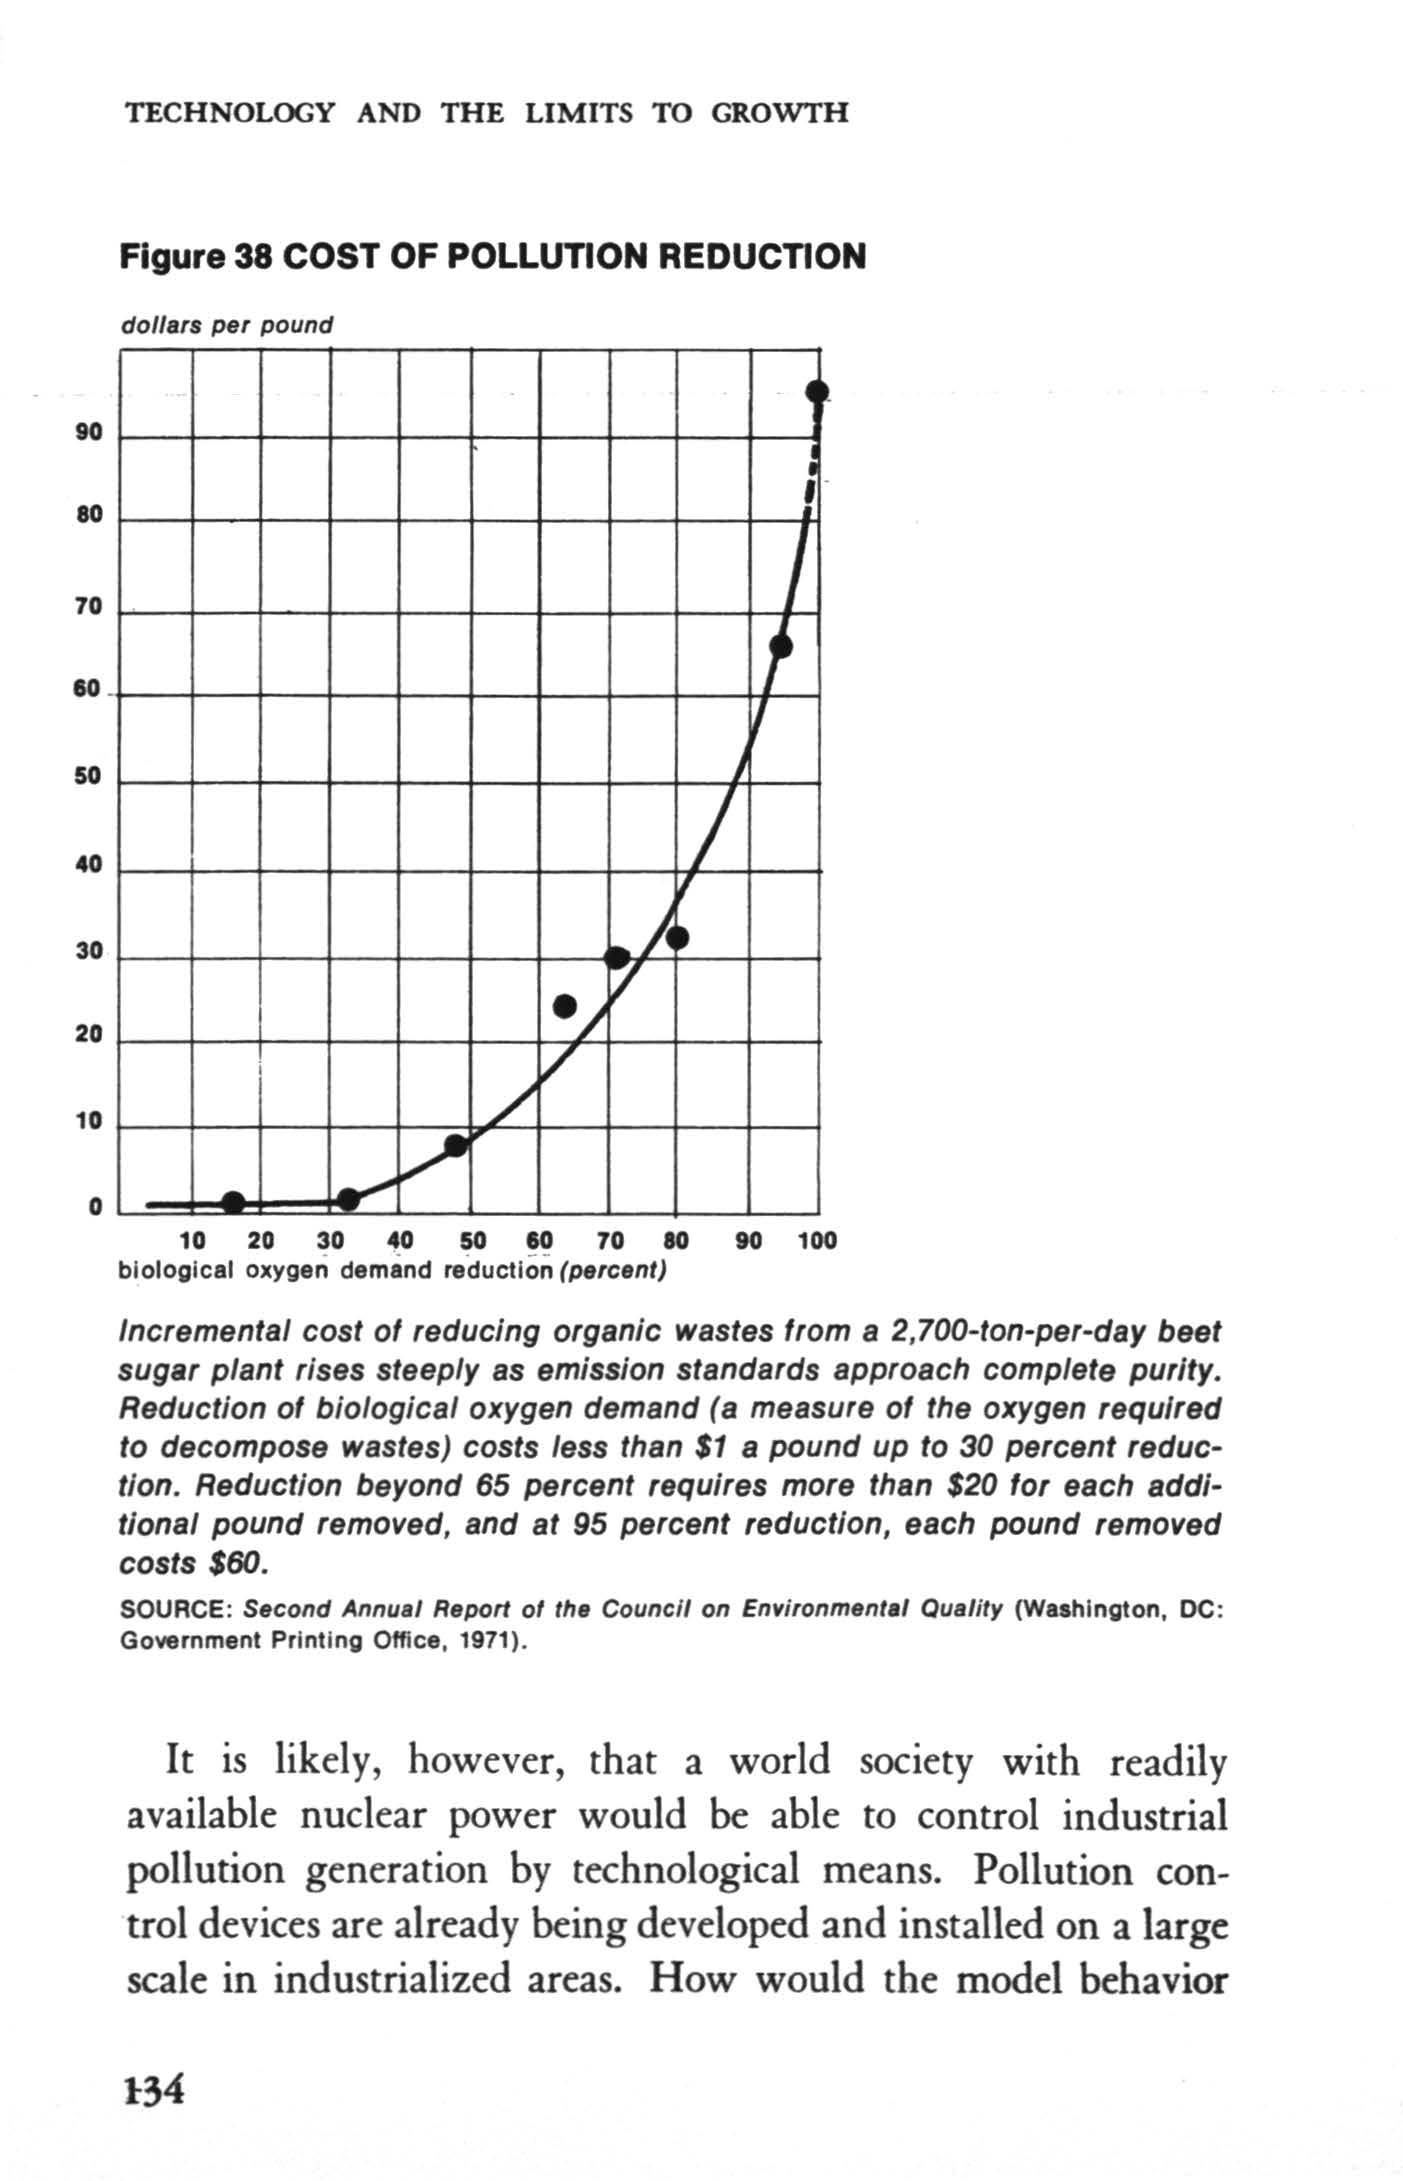 TECHNOLOGY AND THE LMTS TO GROWTH 90 eo 70 eo 50 40 30 20 10 0 Figure 38 COST OF POLLUTON REDUCTON dollars per pound '. ; f J ).